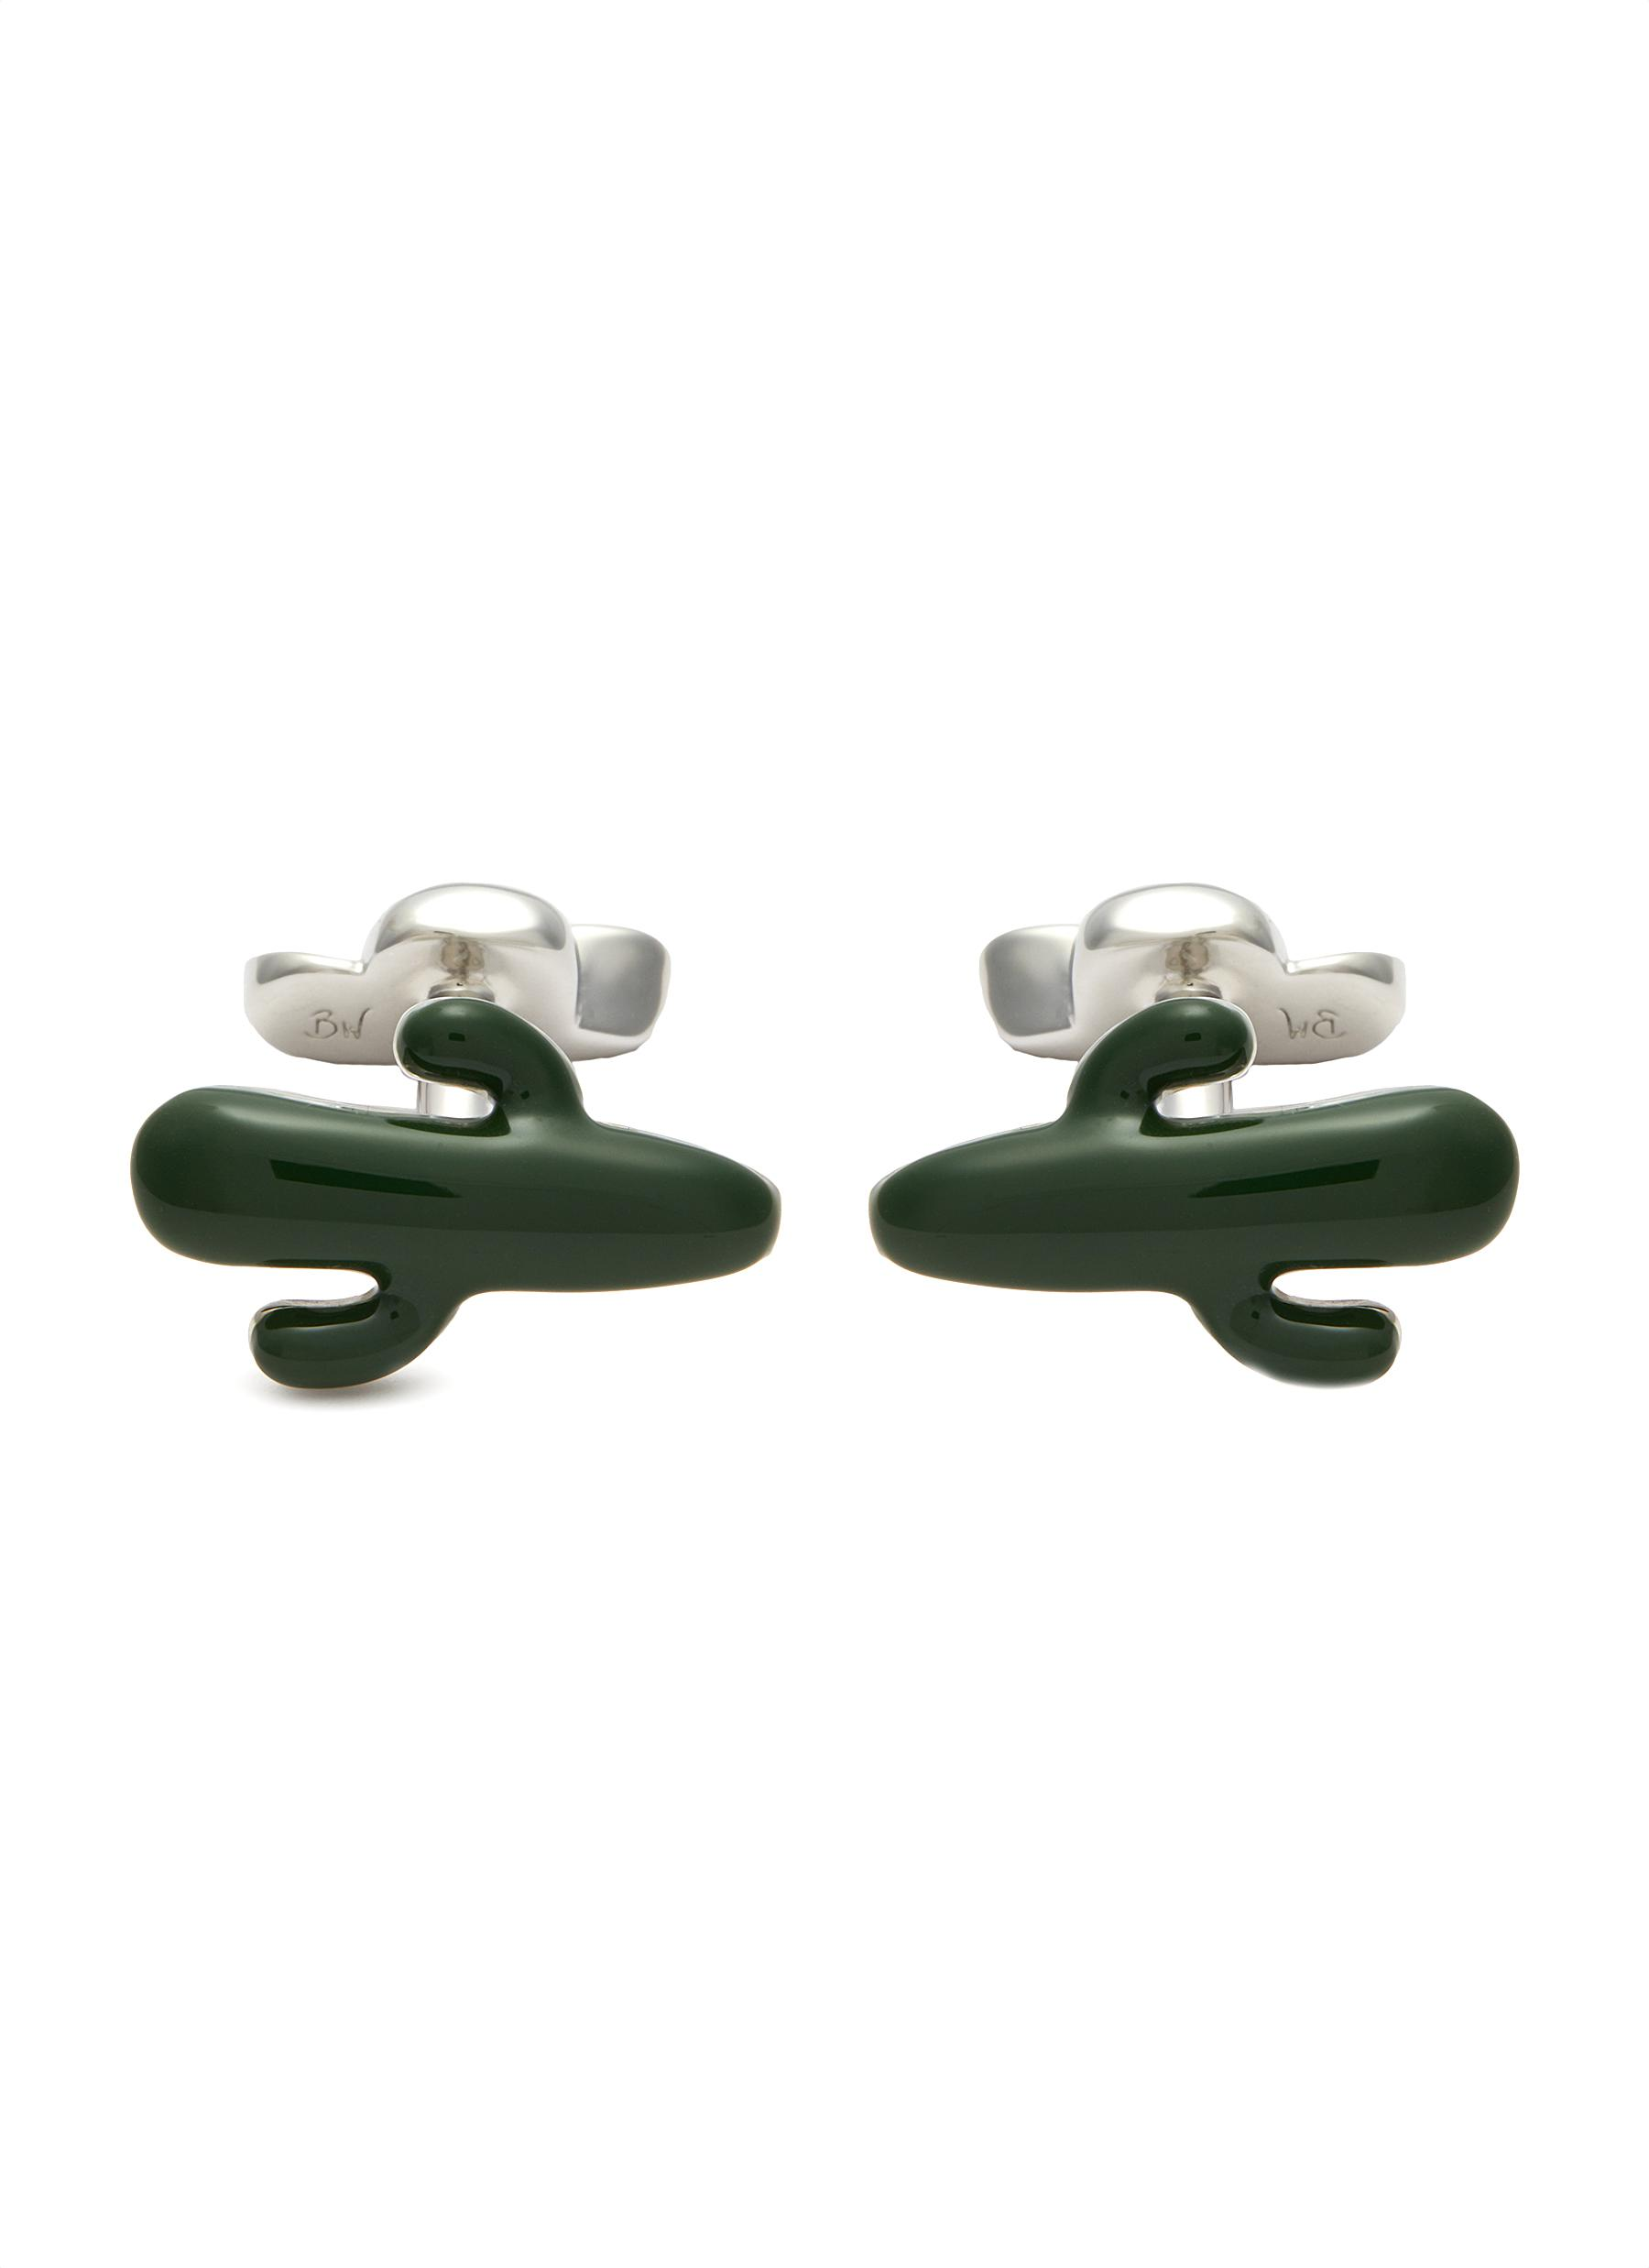 Cactus and cowboy hat cufflinks